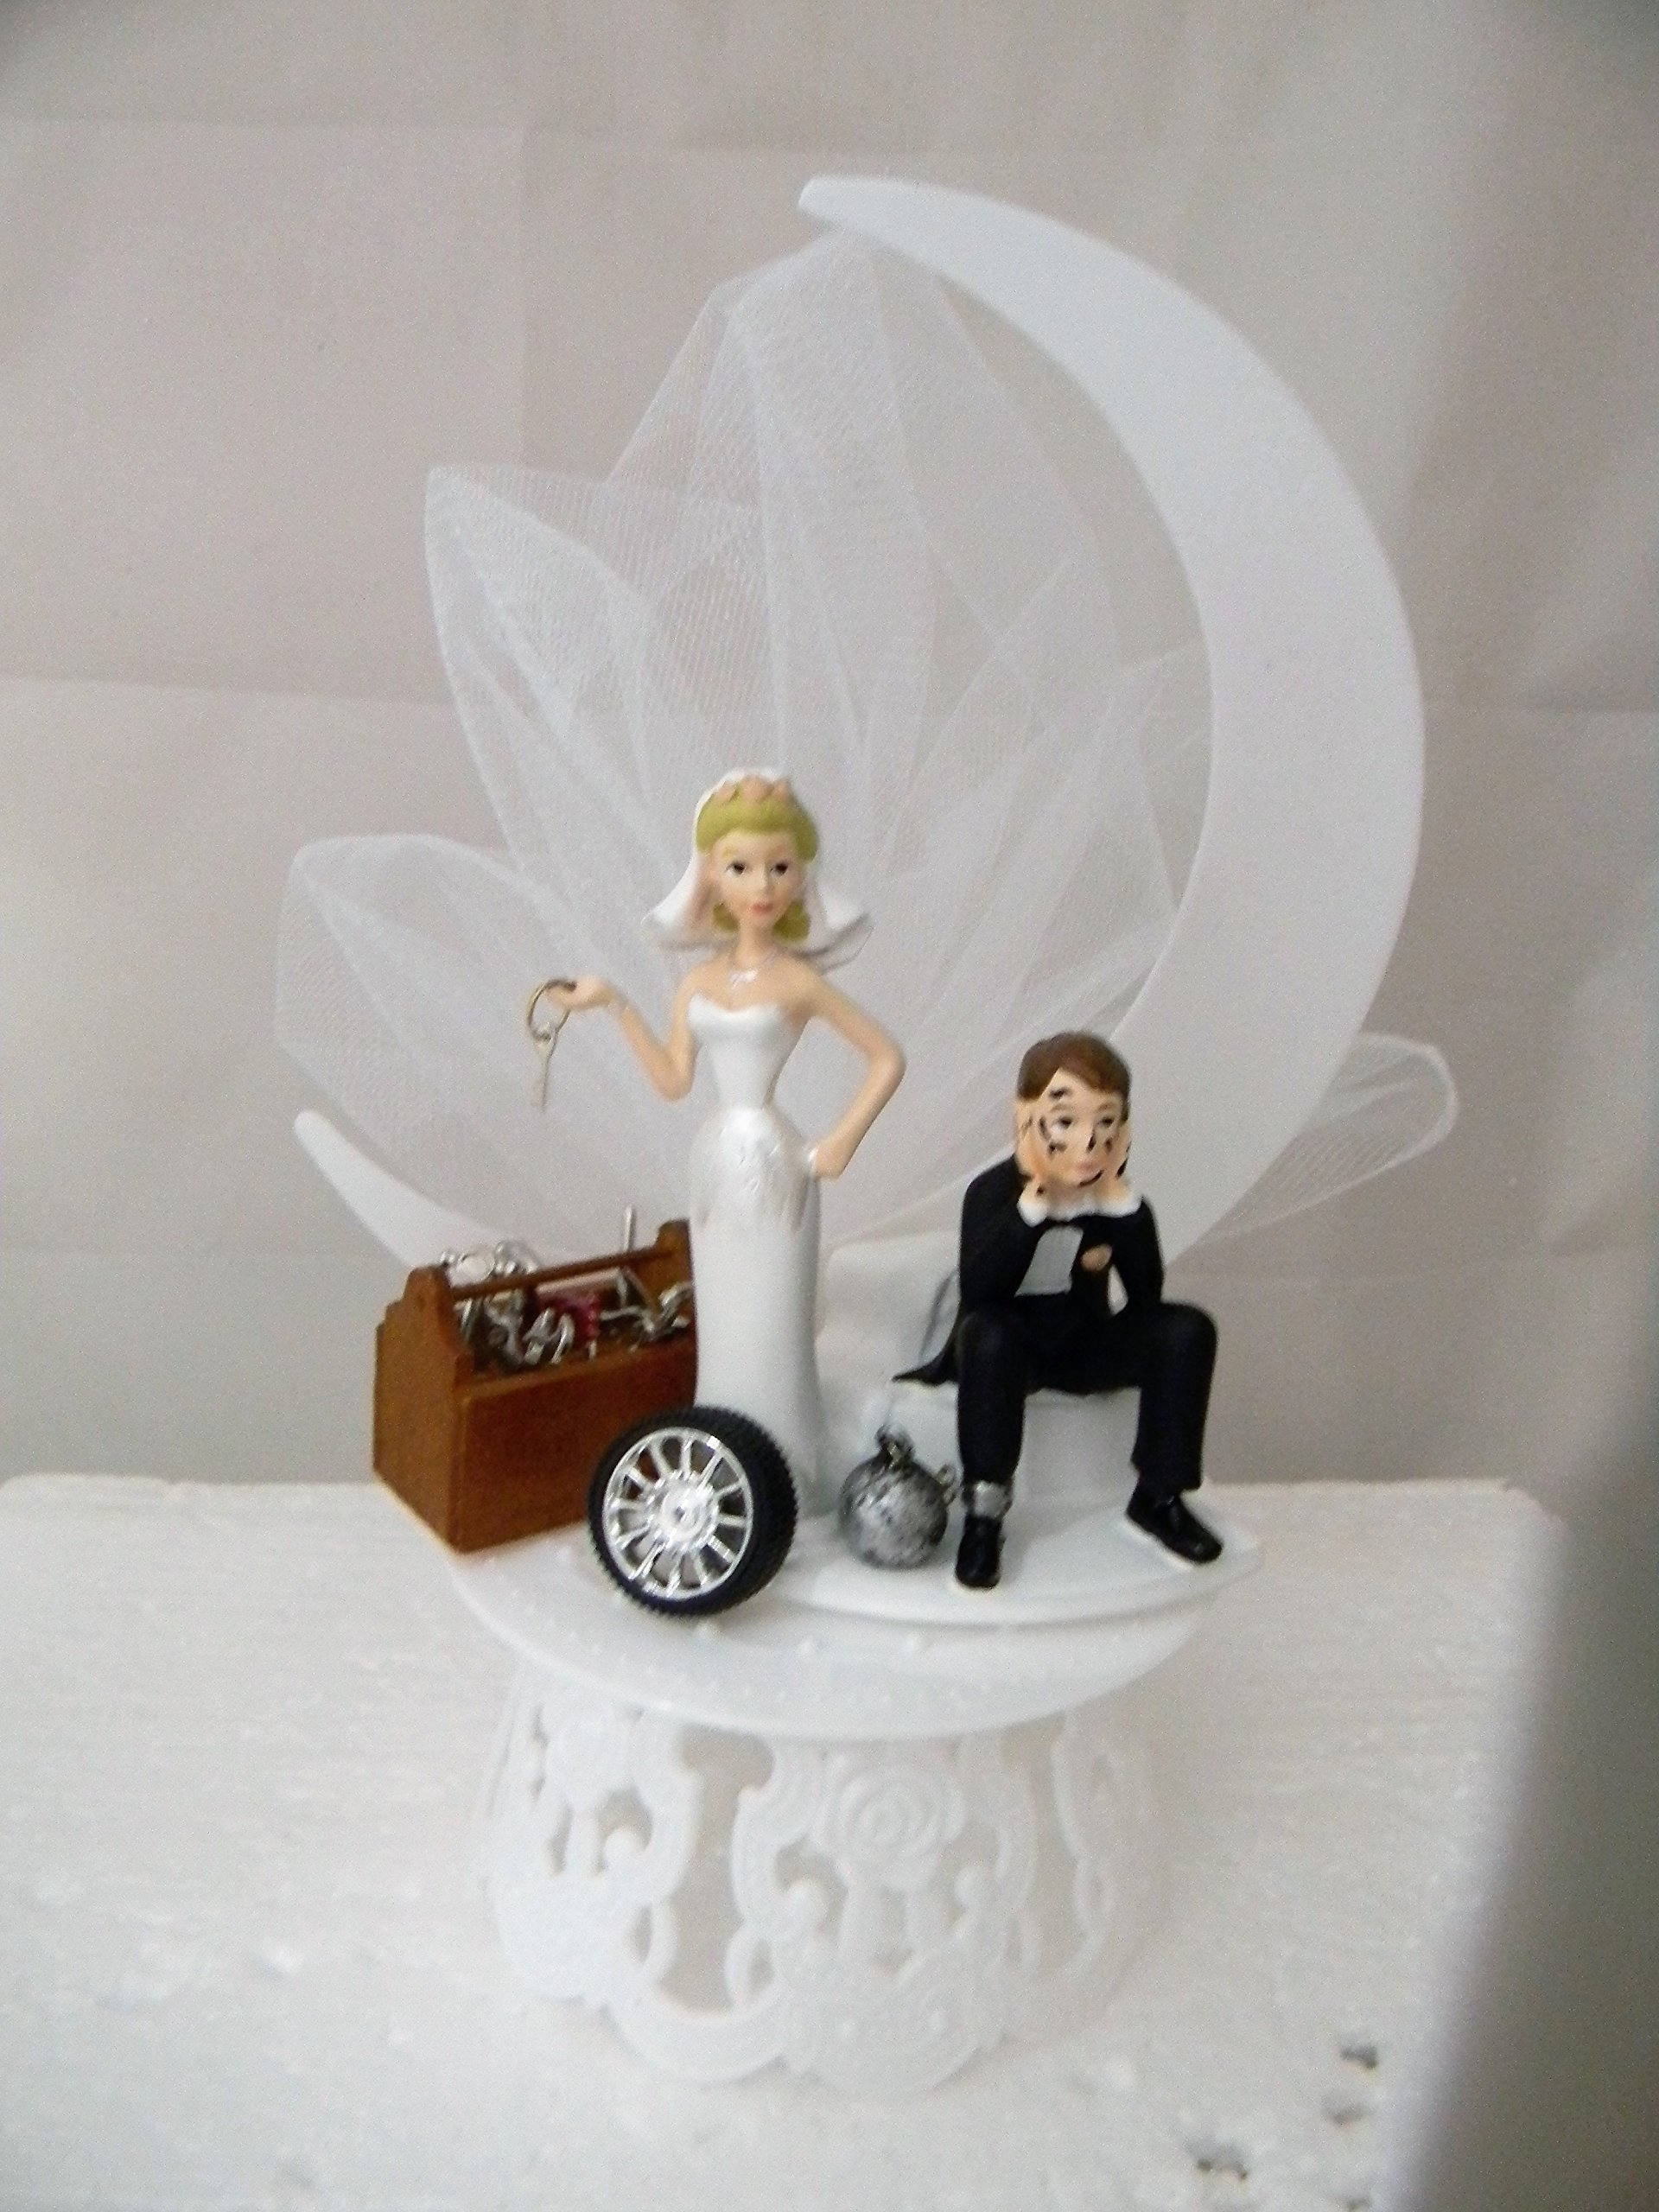 Wedding Reception Ball and Chain Garage Mechanic tool grease Cake Topper by Custom Design Wedding Supplies by Suzanne